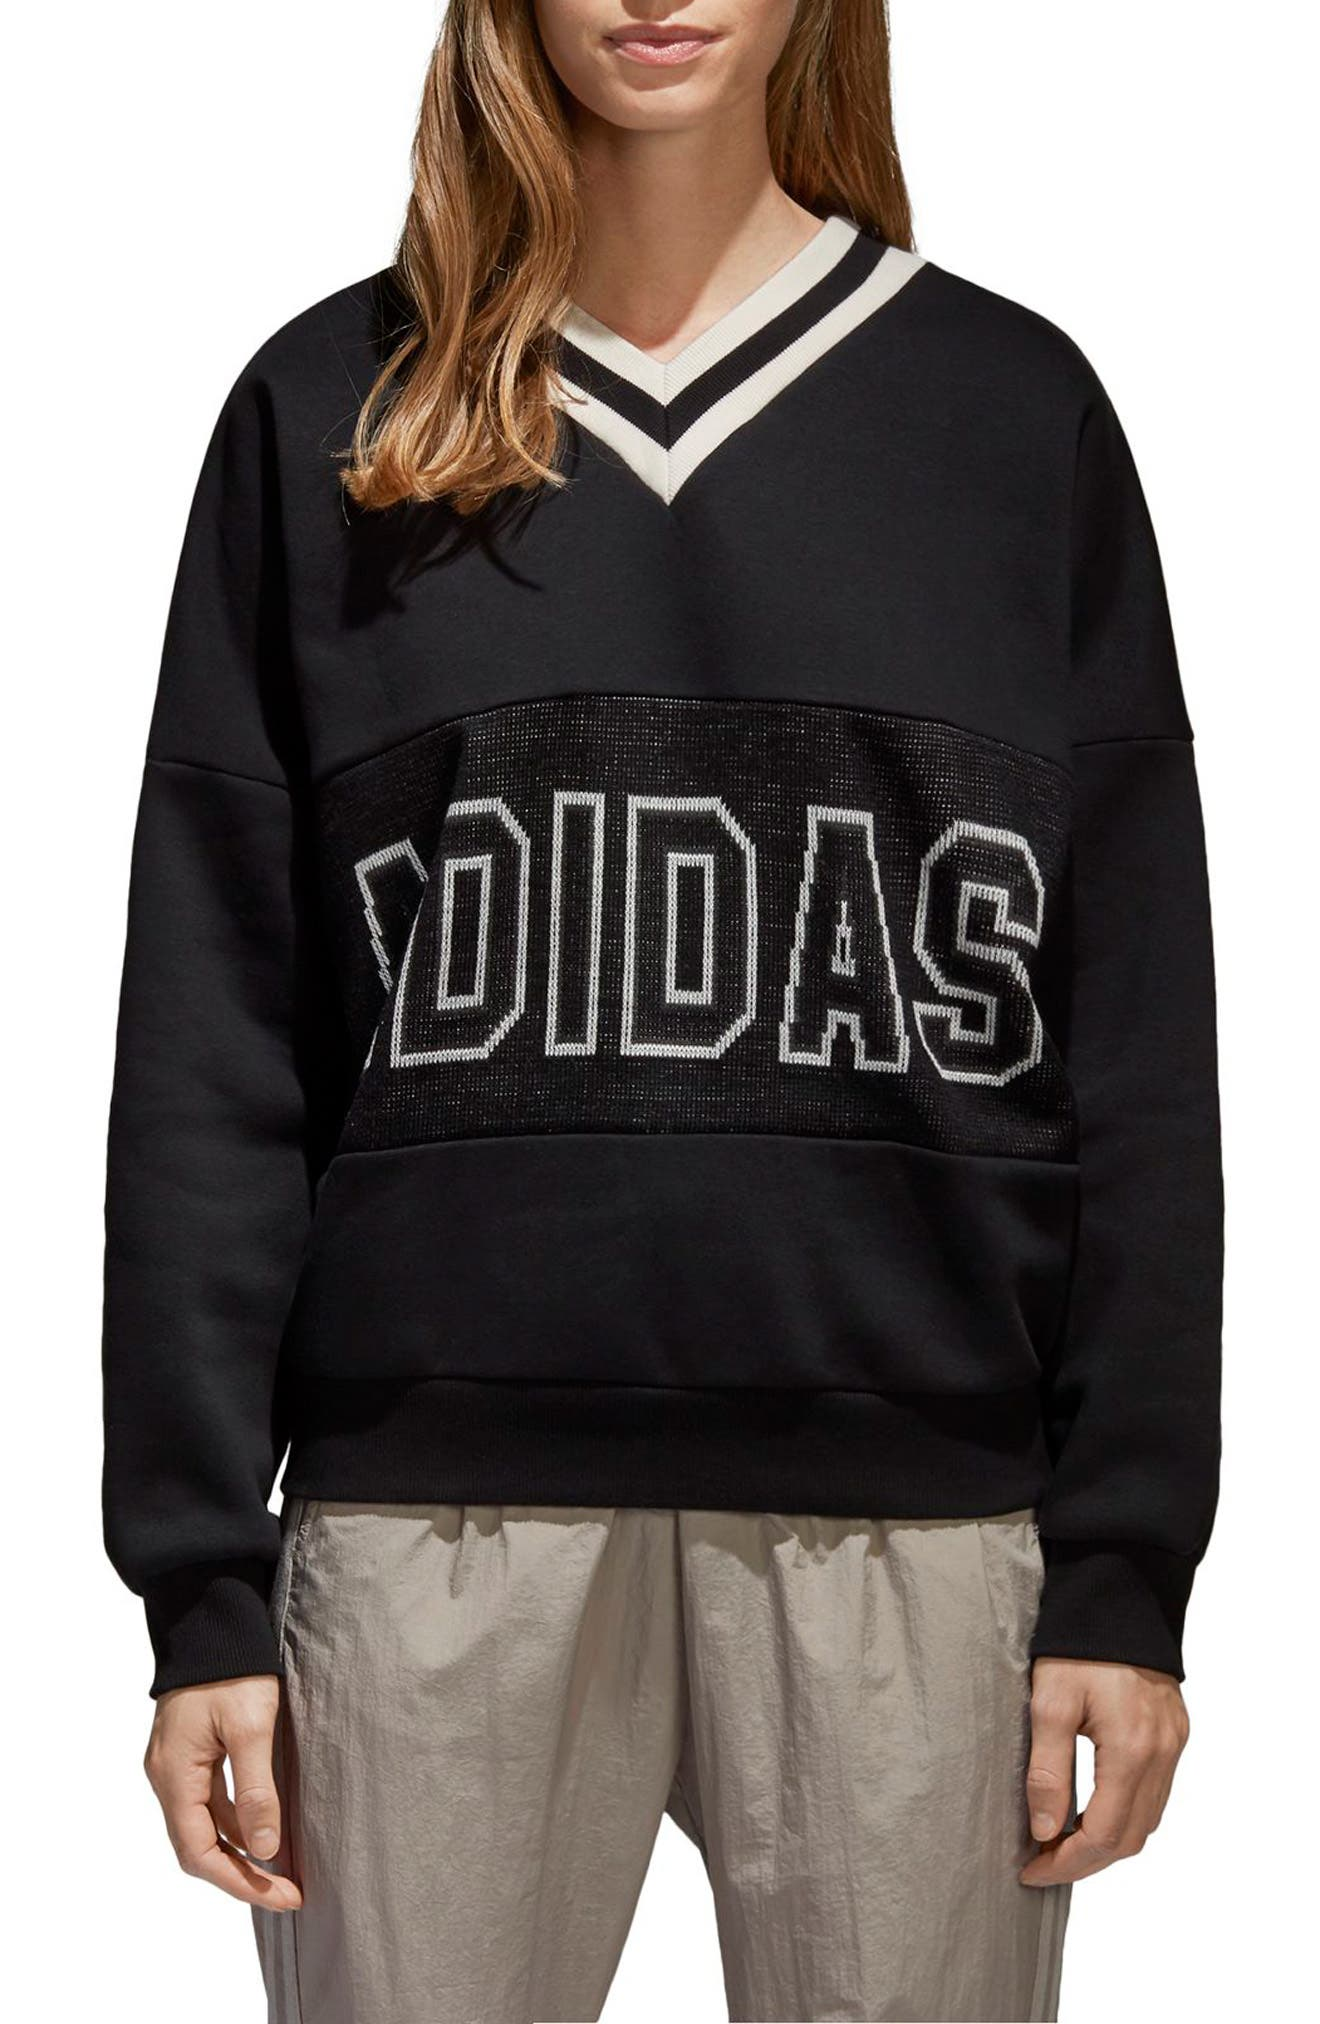 Originals Adibreak Sweatshirt,                             Main thumbnail 1, color,                             001